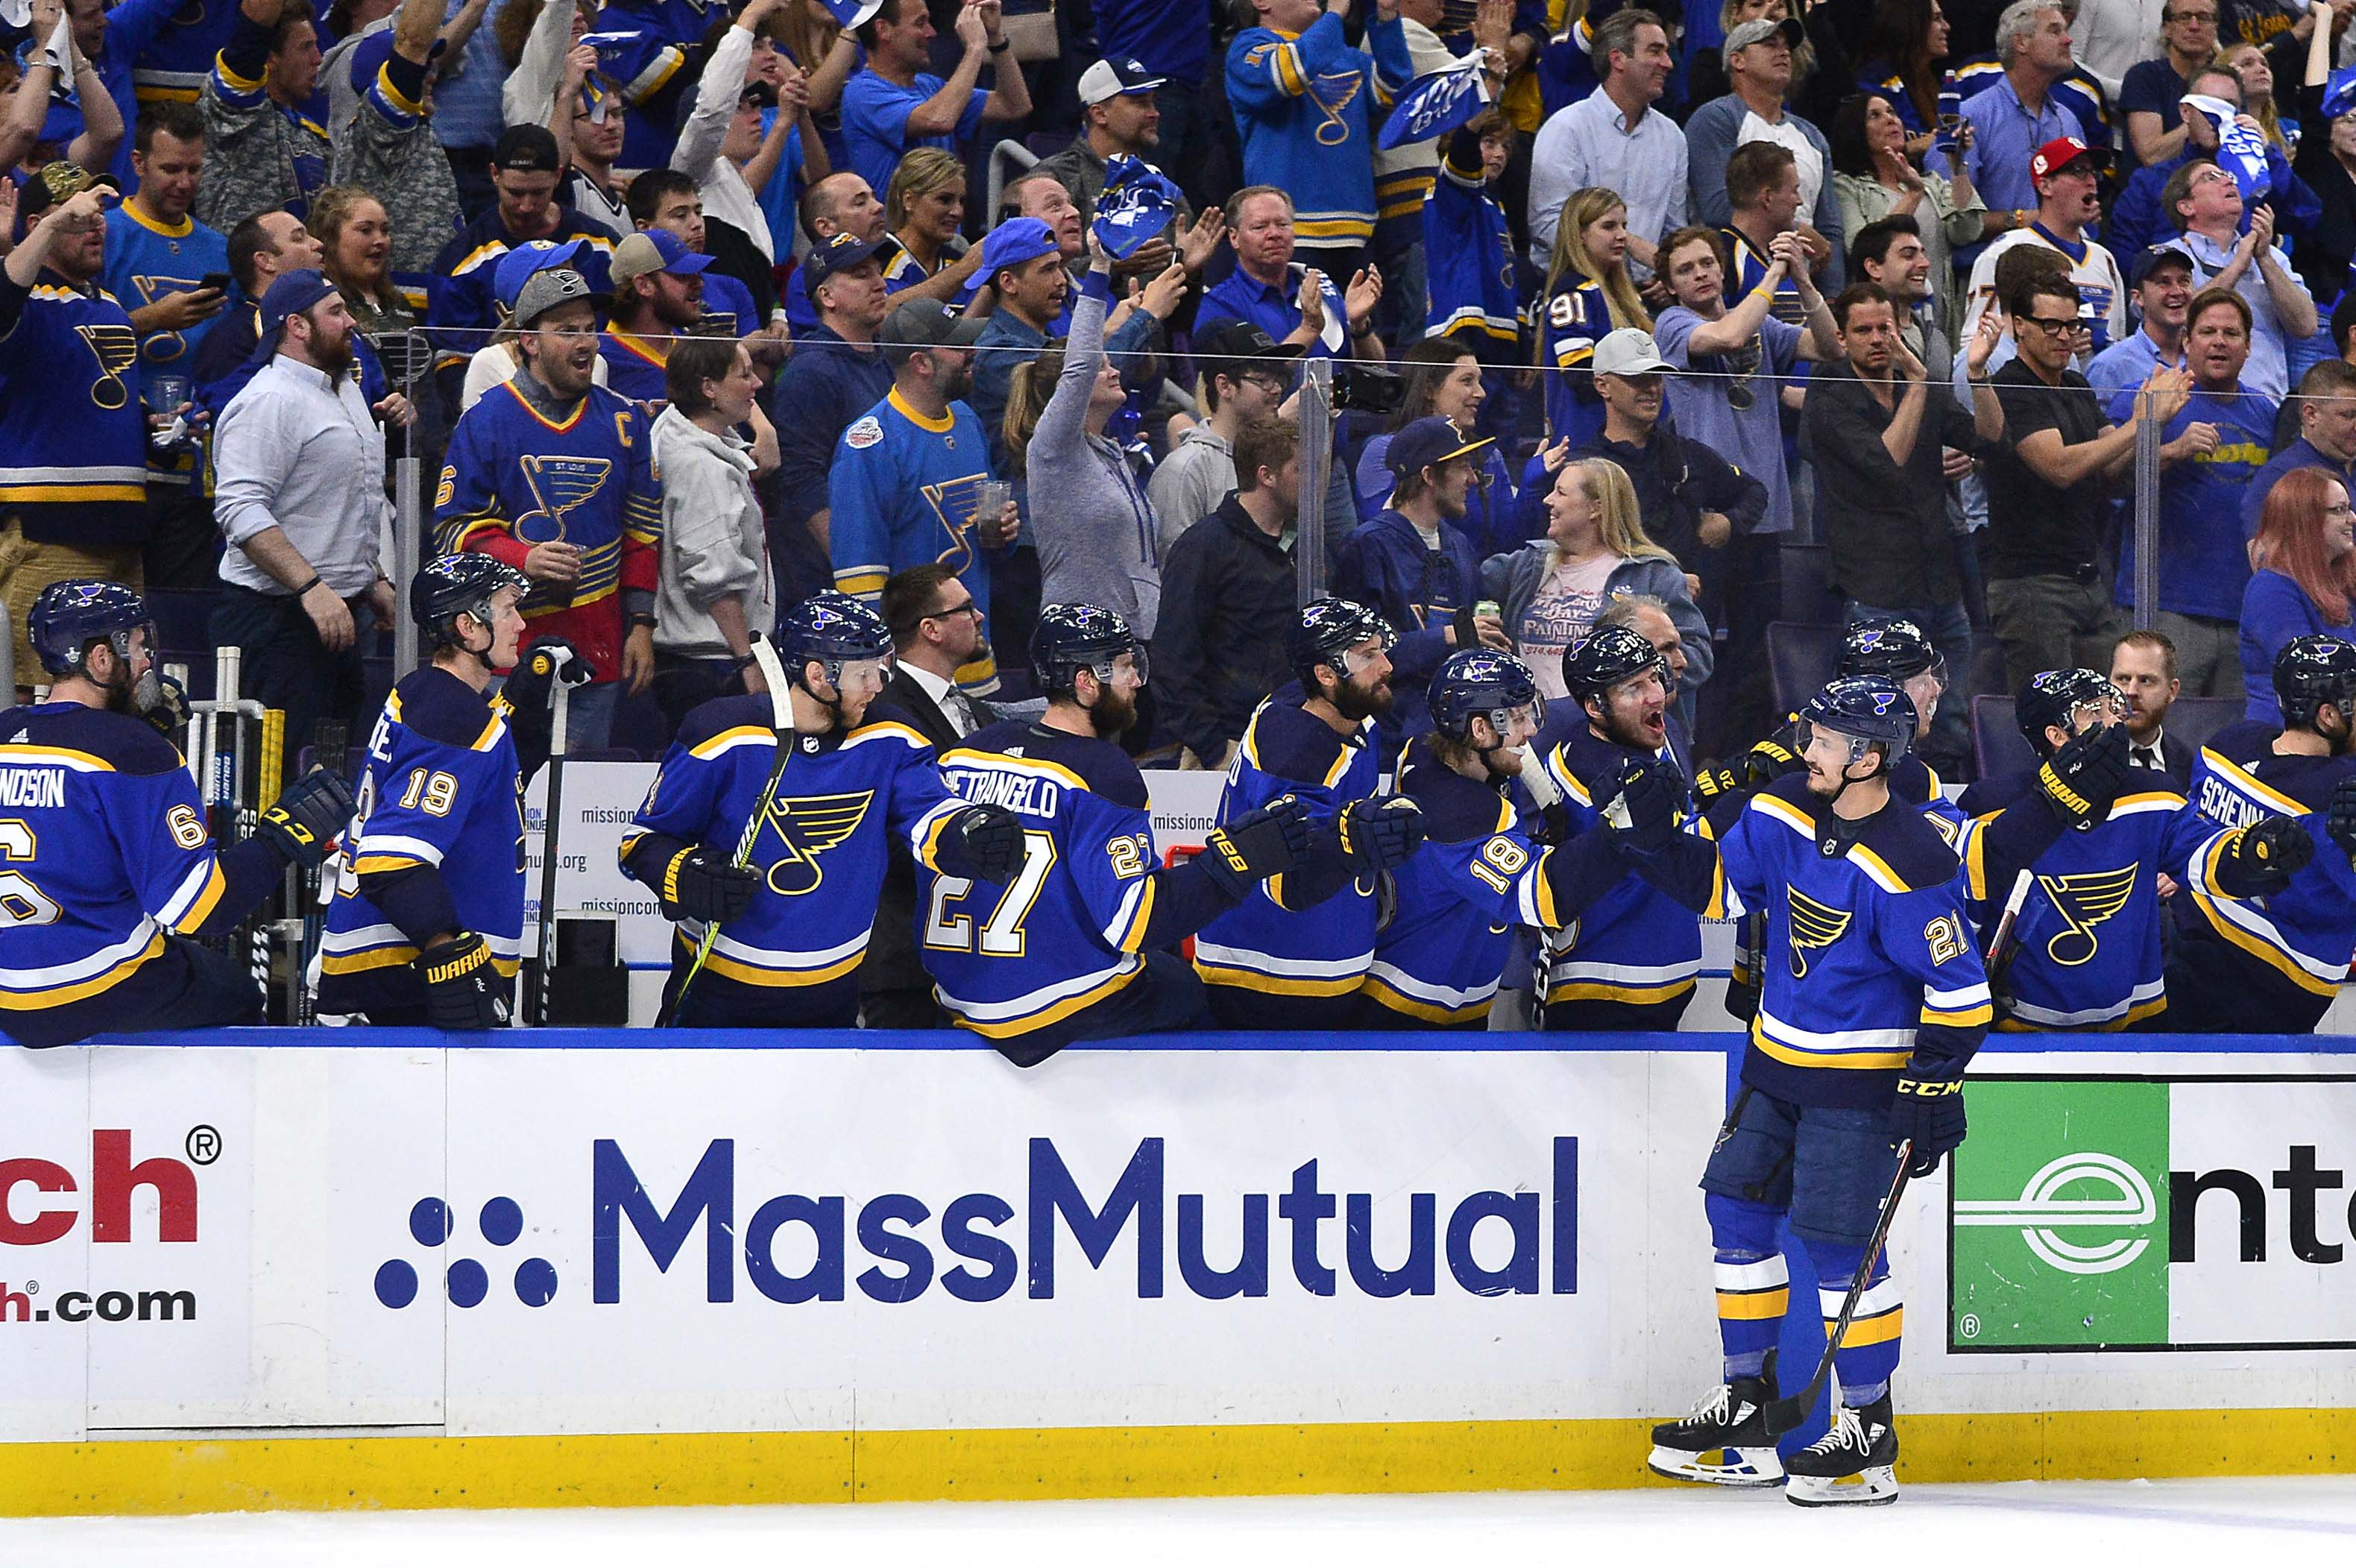 NHL Playoff 2019 Roundup: Blues pull even with Sharks with 2